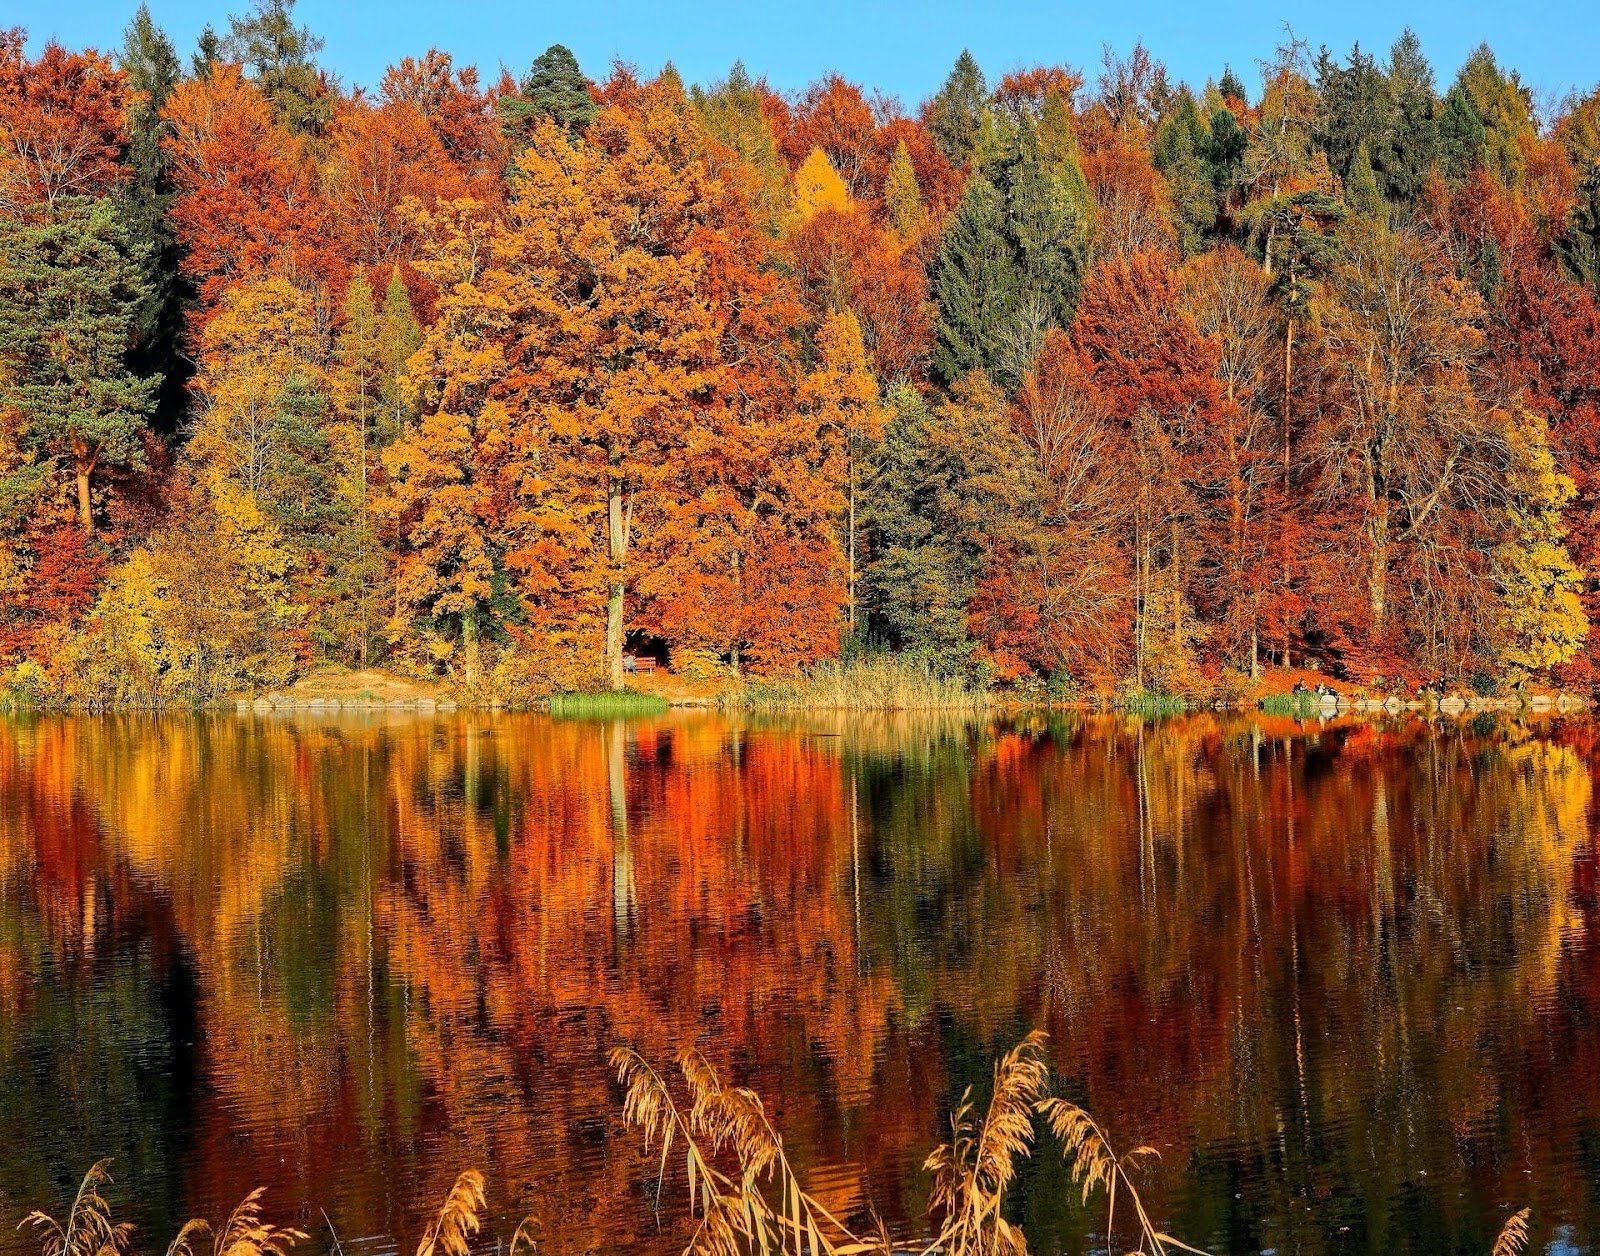 fall foliage on the water